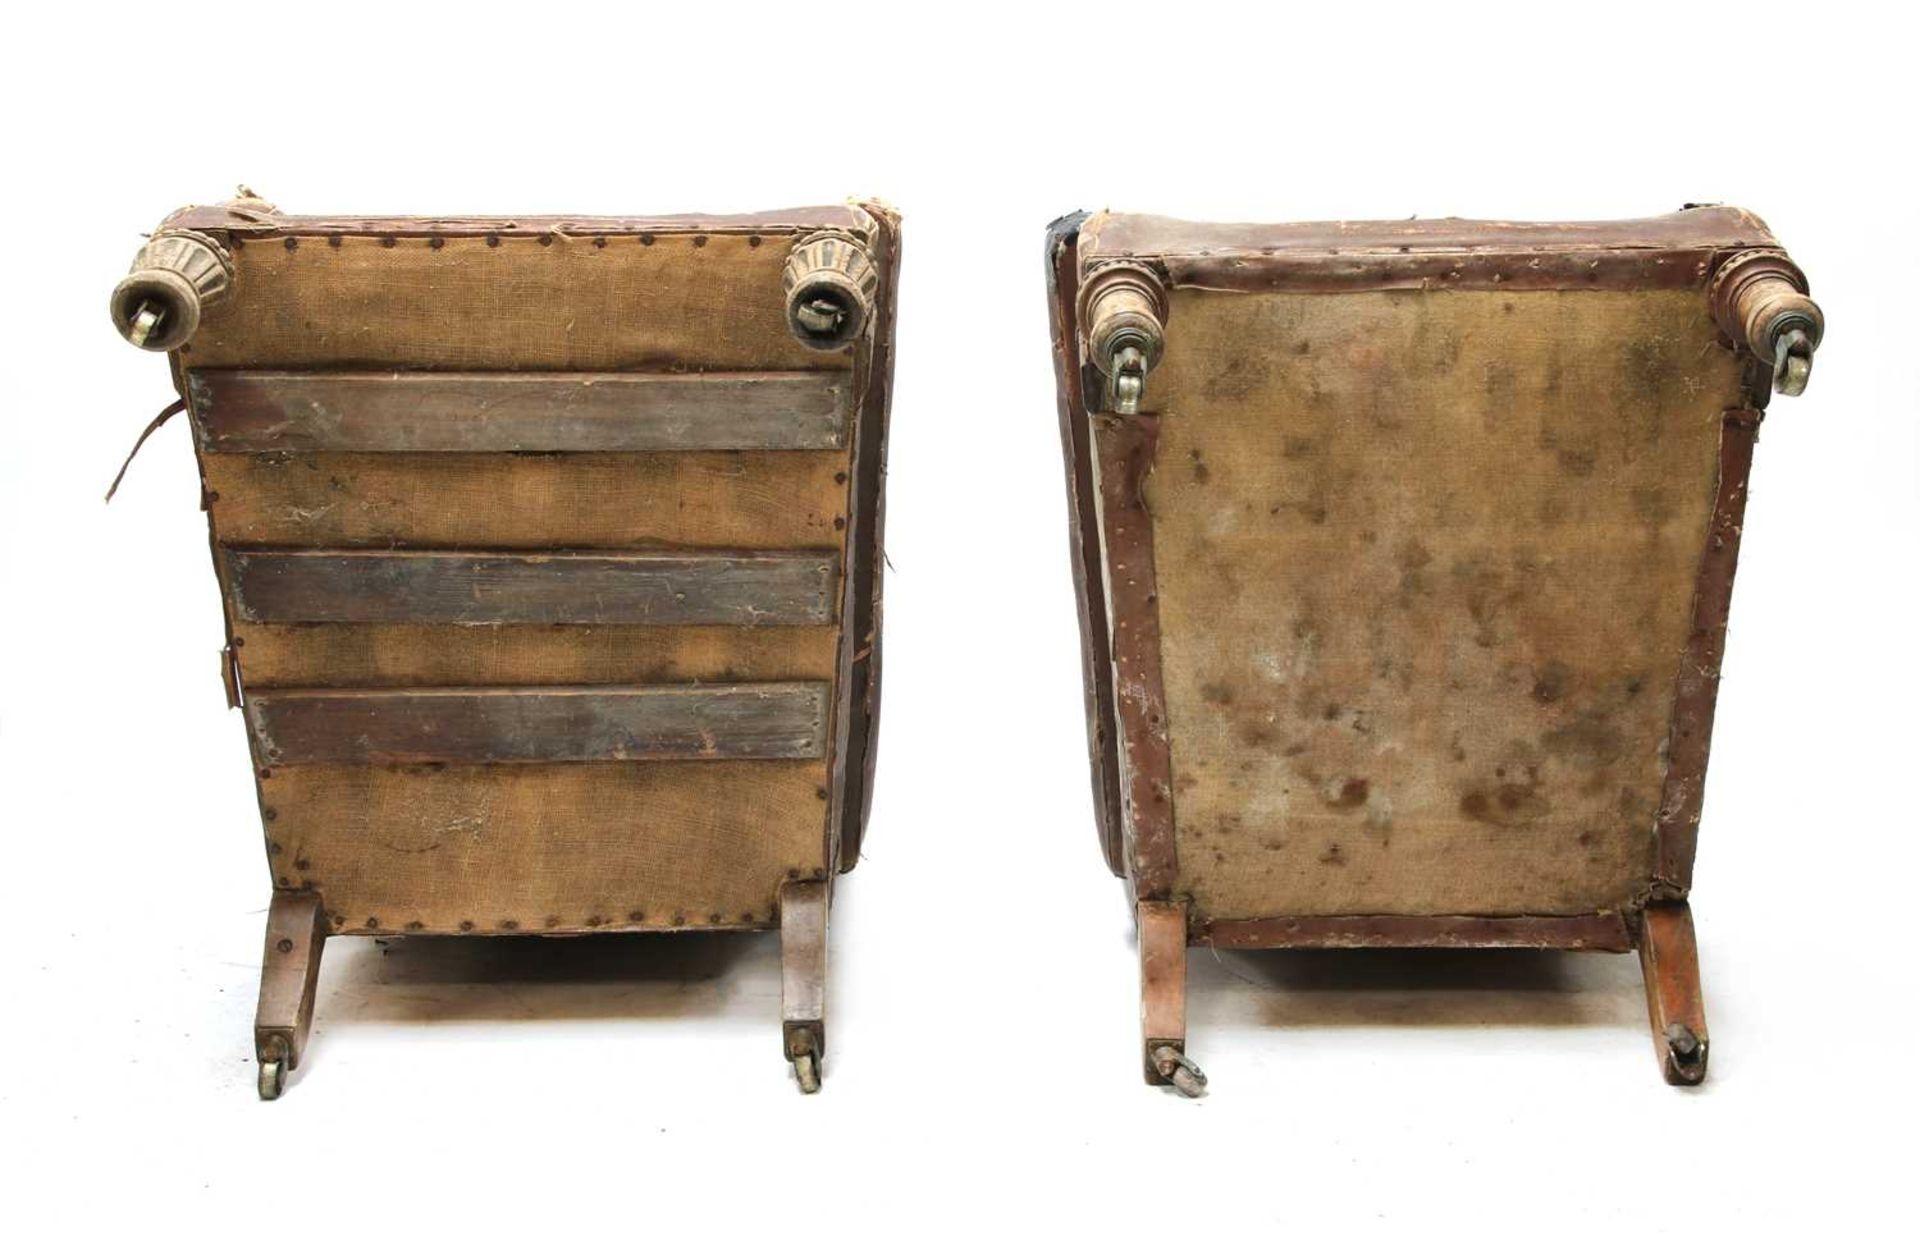 Two similar library armchairs by Gillow, - Image 7 of 7